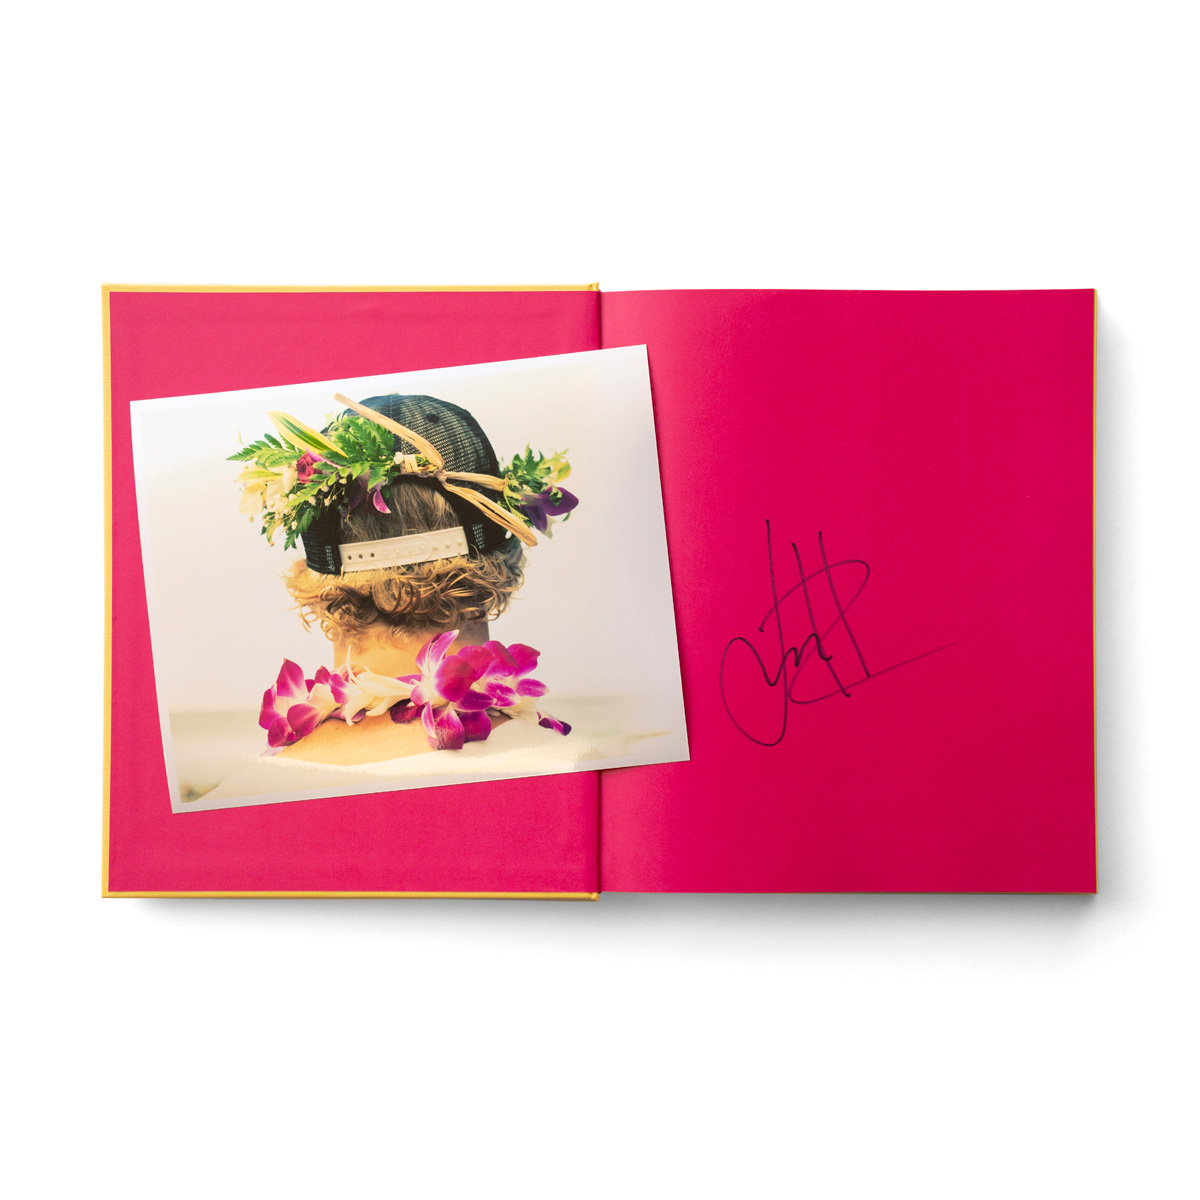 HI 1K Signed copy with signed print by Justin Jay